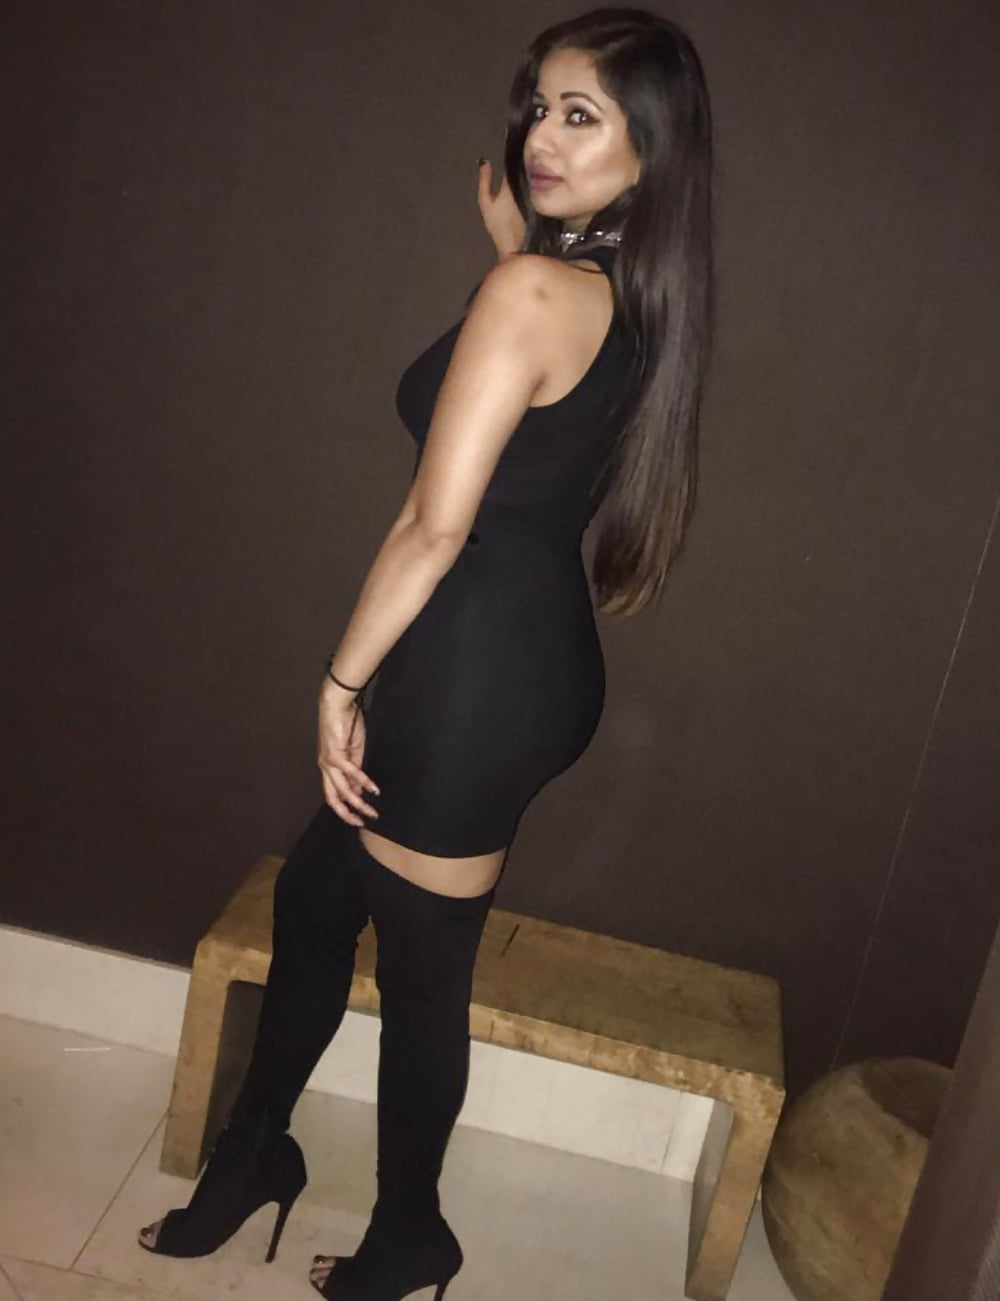 Sexy Girl Paki indian Hottes Ledis Night 9 - Sexy Girl Paki indian Hottes Ledis Night